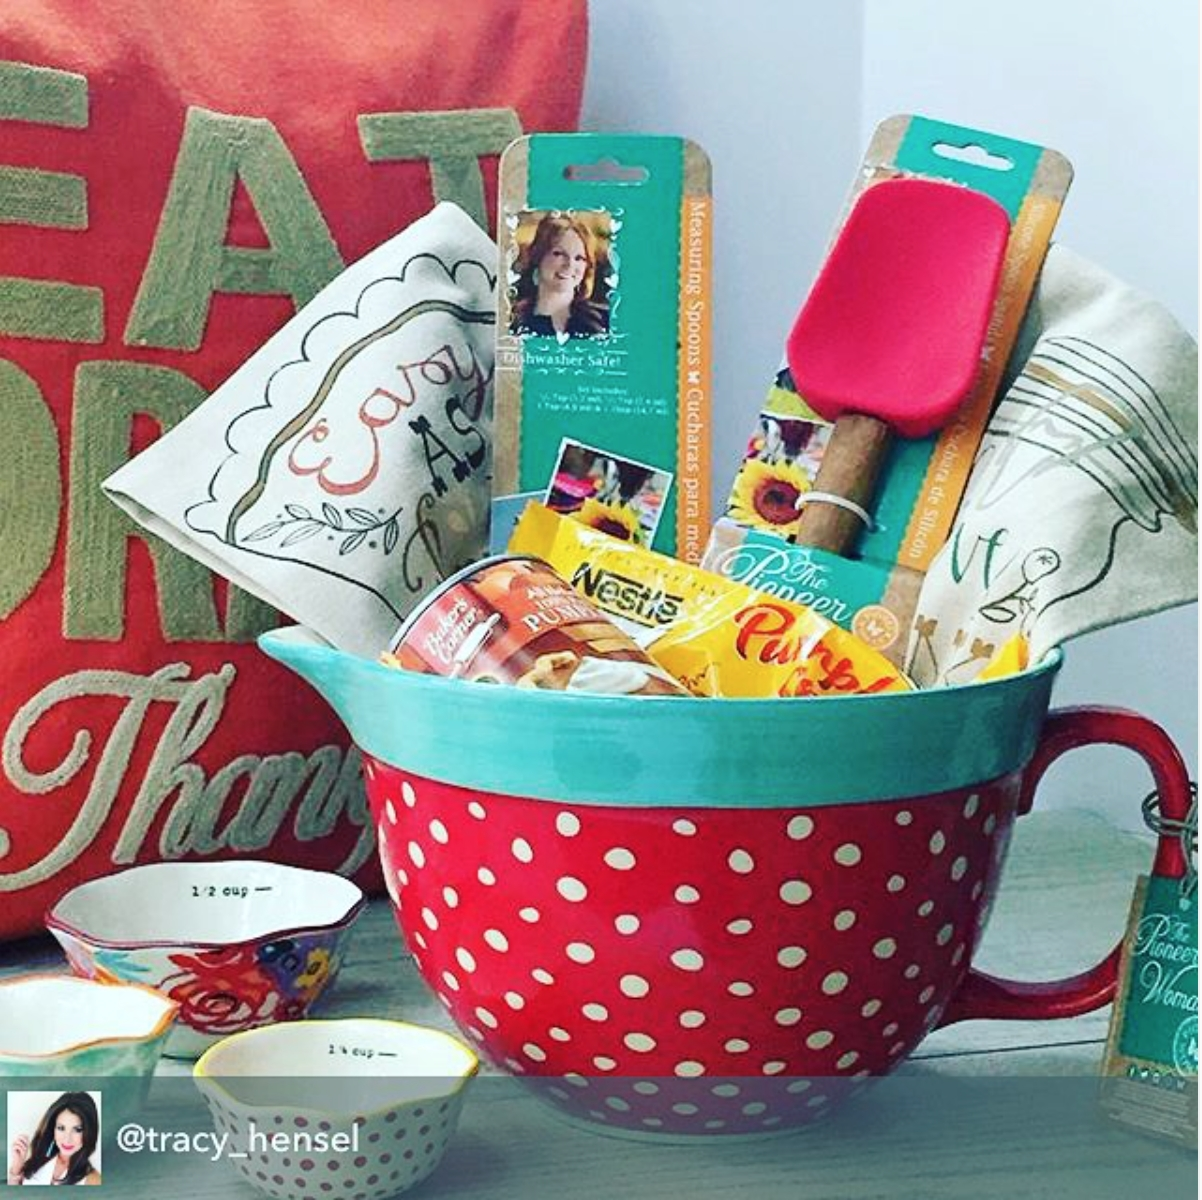 10 Most Recommended Creative Gift Ideas For Wife great gift idea featuring the new pioneer woman mixing bowl 2 2021